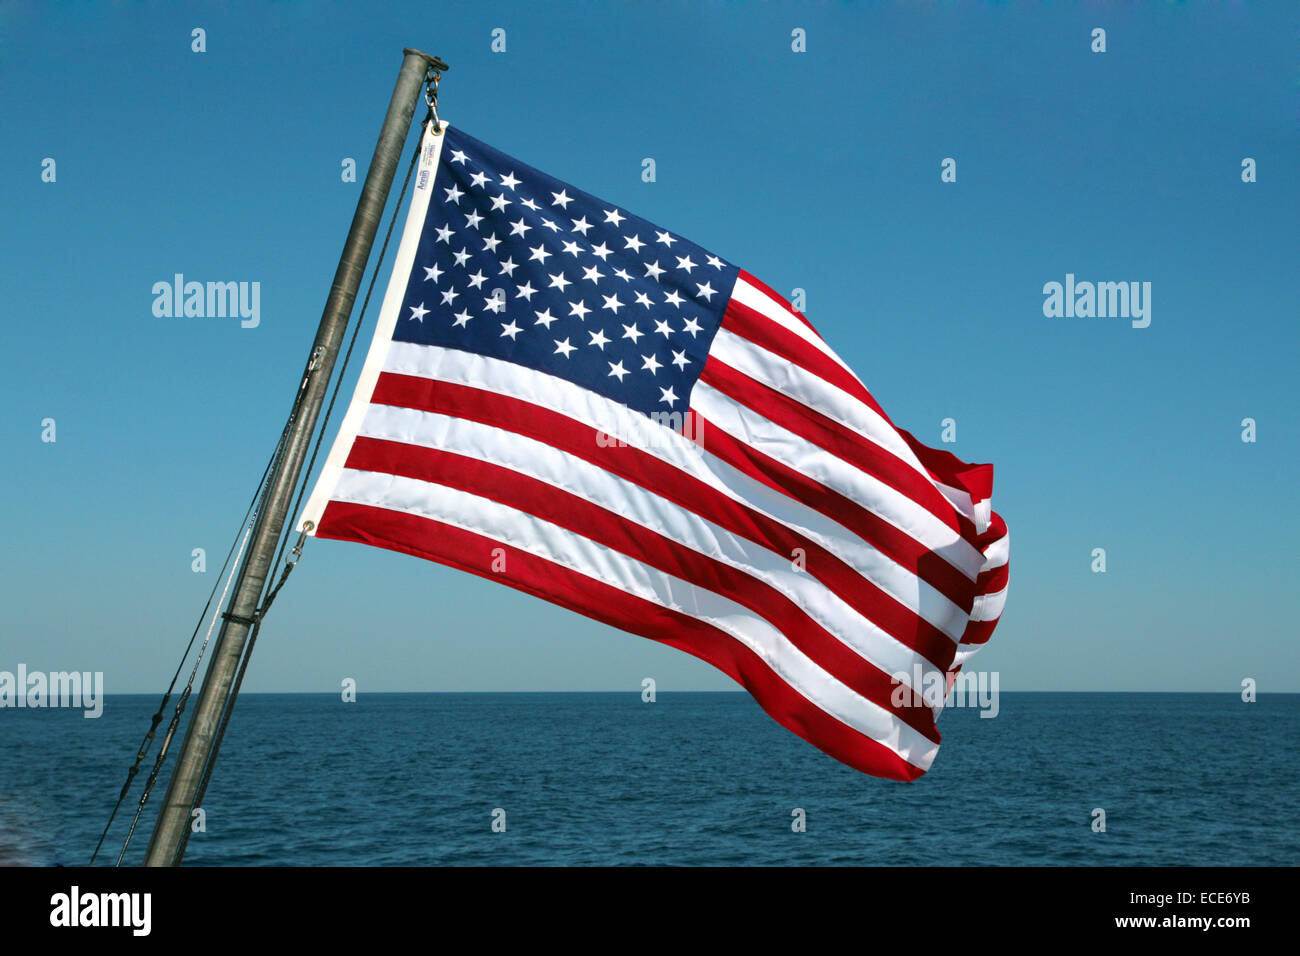 Flagge Amerikanische Flag American Amerika Fahne Fahnen Amerikanisch typisch typical America Stars and Stripes red - Stock Image